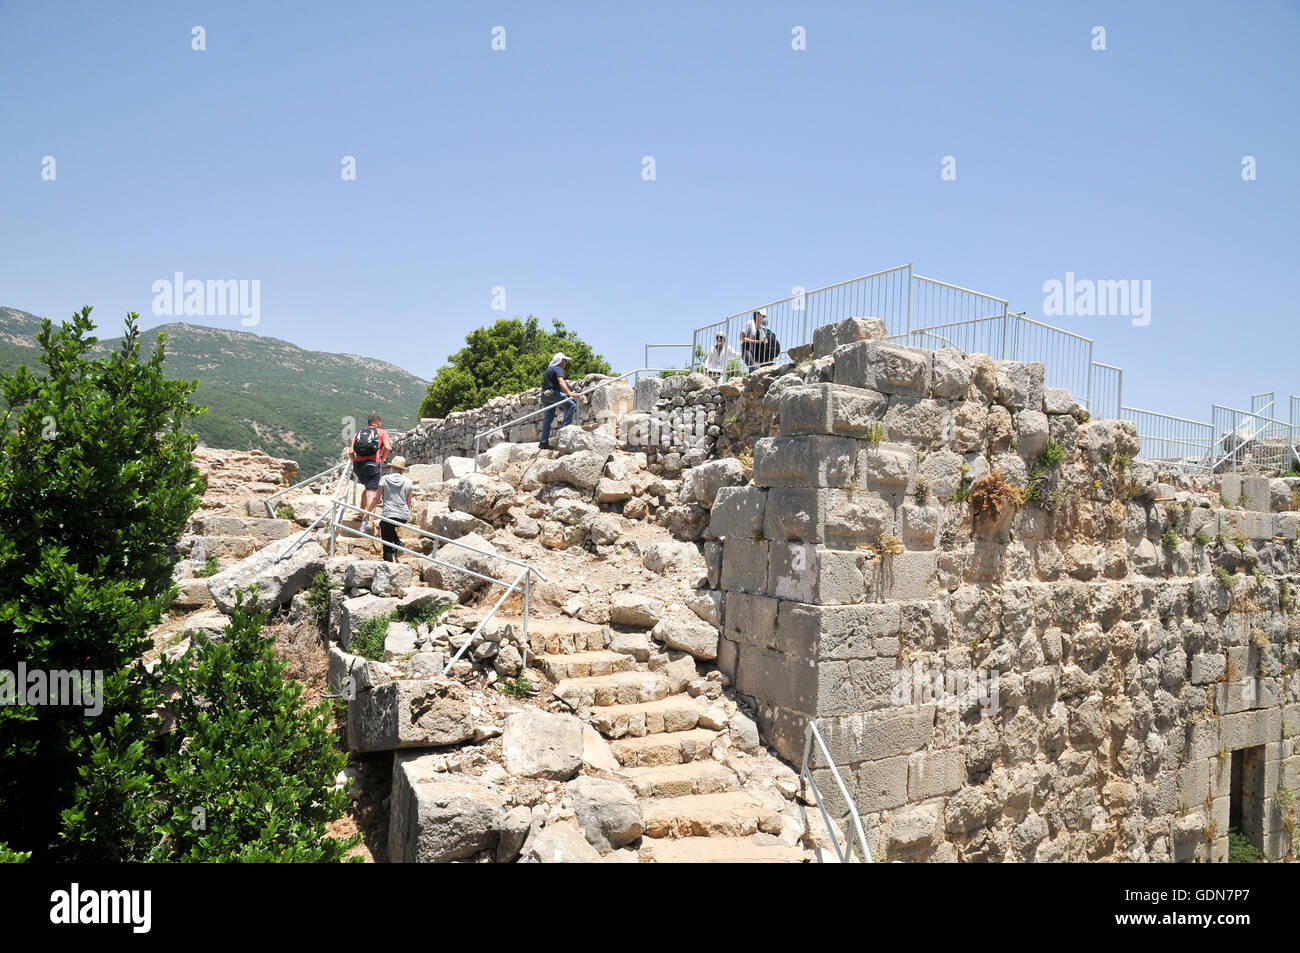 The Nimrod (Namrud) Fortress or Nimrod Castle is a medieval Muslim castle situated on the southern slopes of Mount - Stock Image